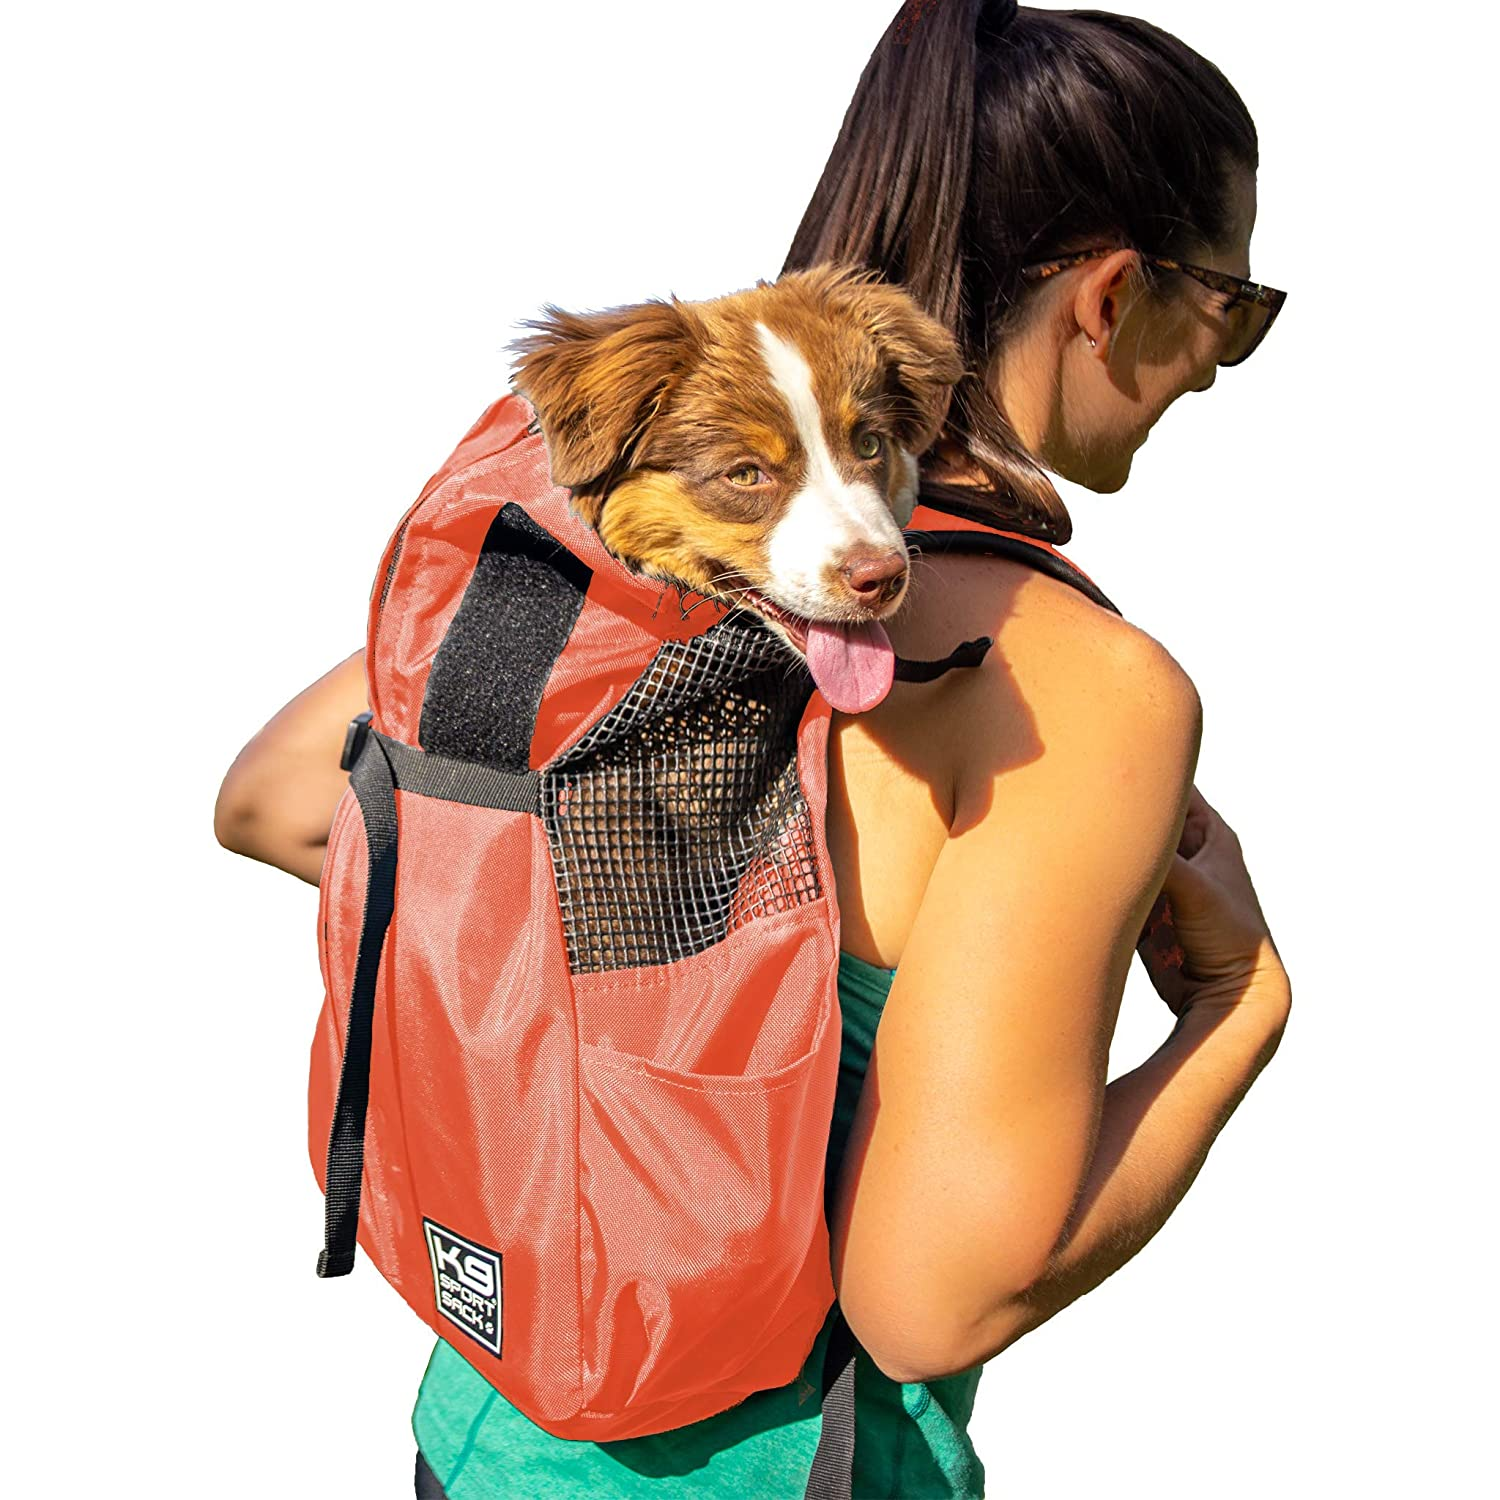 K9 Sport Sack Trainer Front Facing Adjustable Dog Backpack Carrier with Storage Bag Veterinarian Approved Dog Carrier Dog Backpack for Small and Medium Pets Large, Irongate